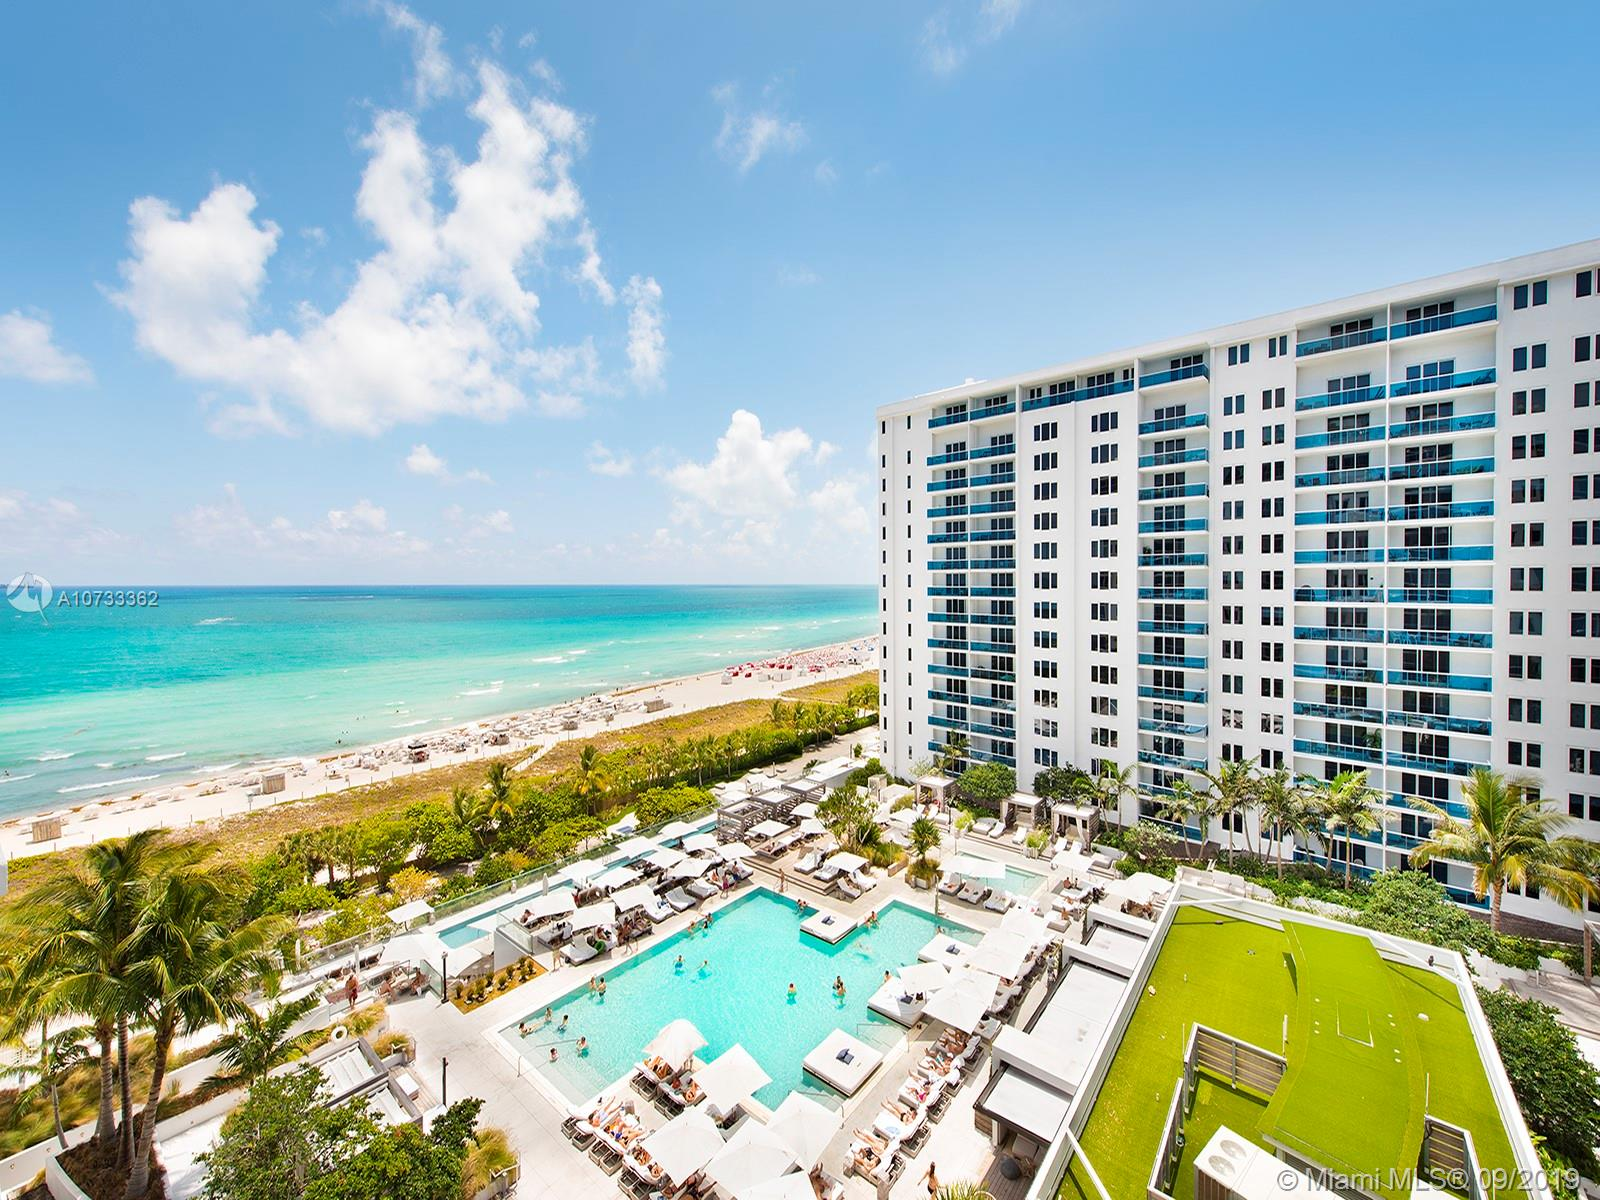 1 Hotel & Homes #1012 - 102 24th St #1012, Miami Beach, FL 33139